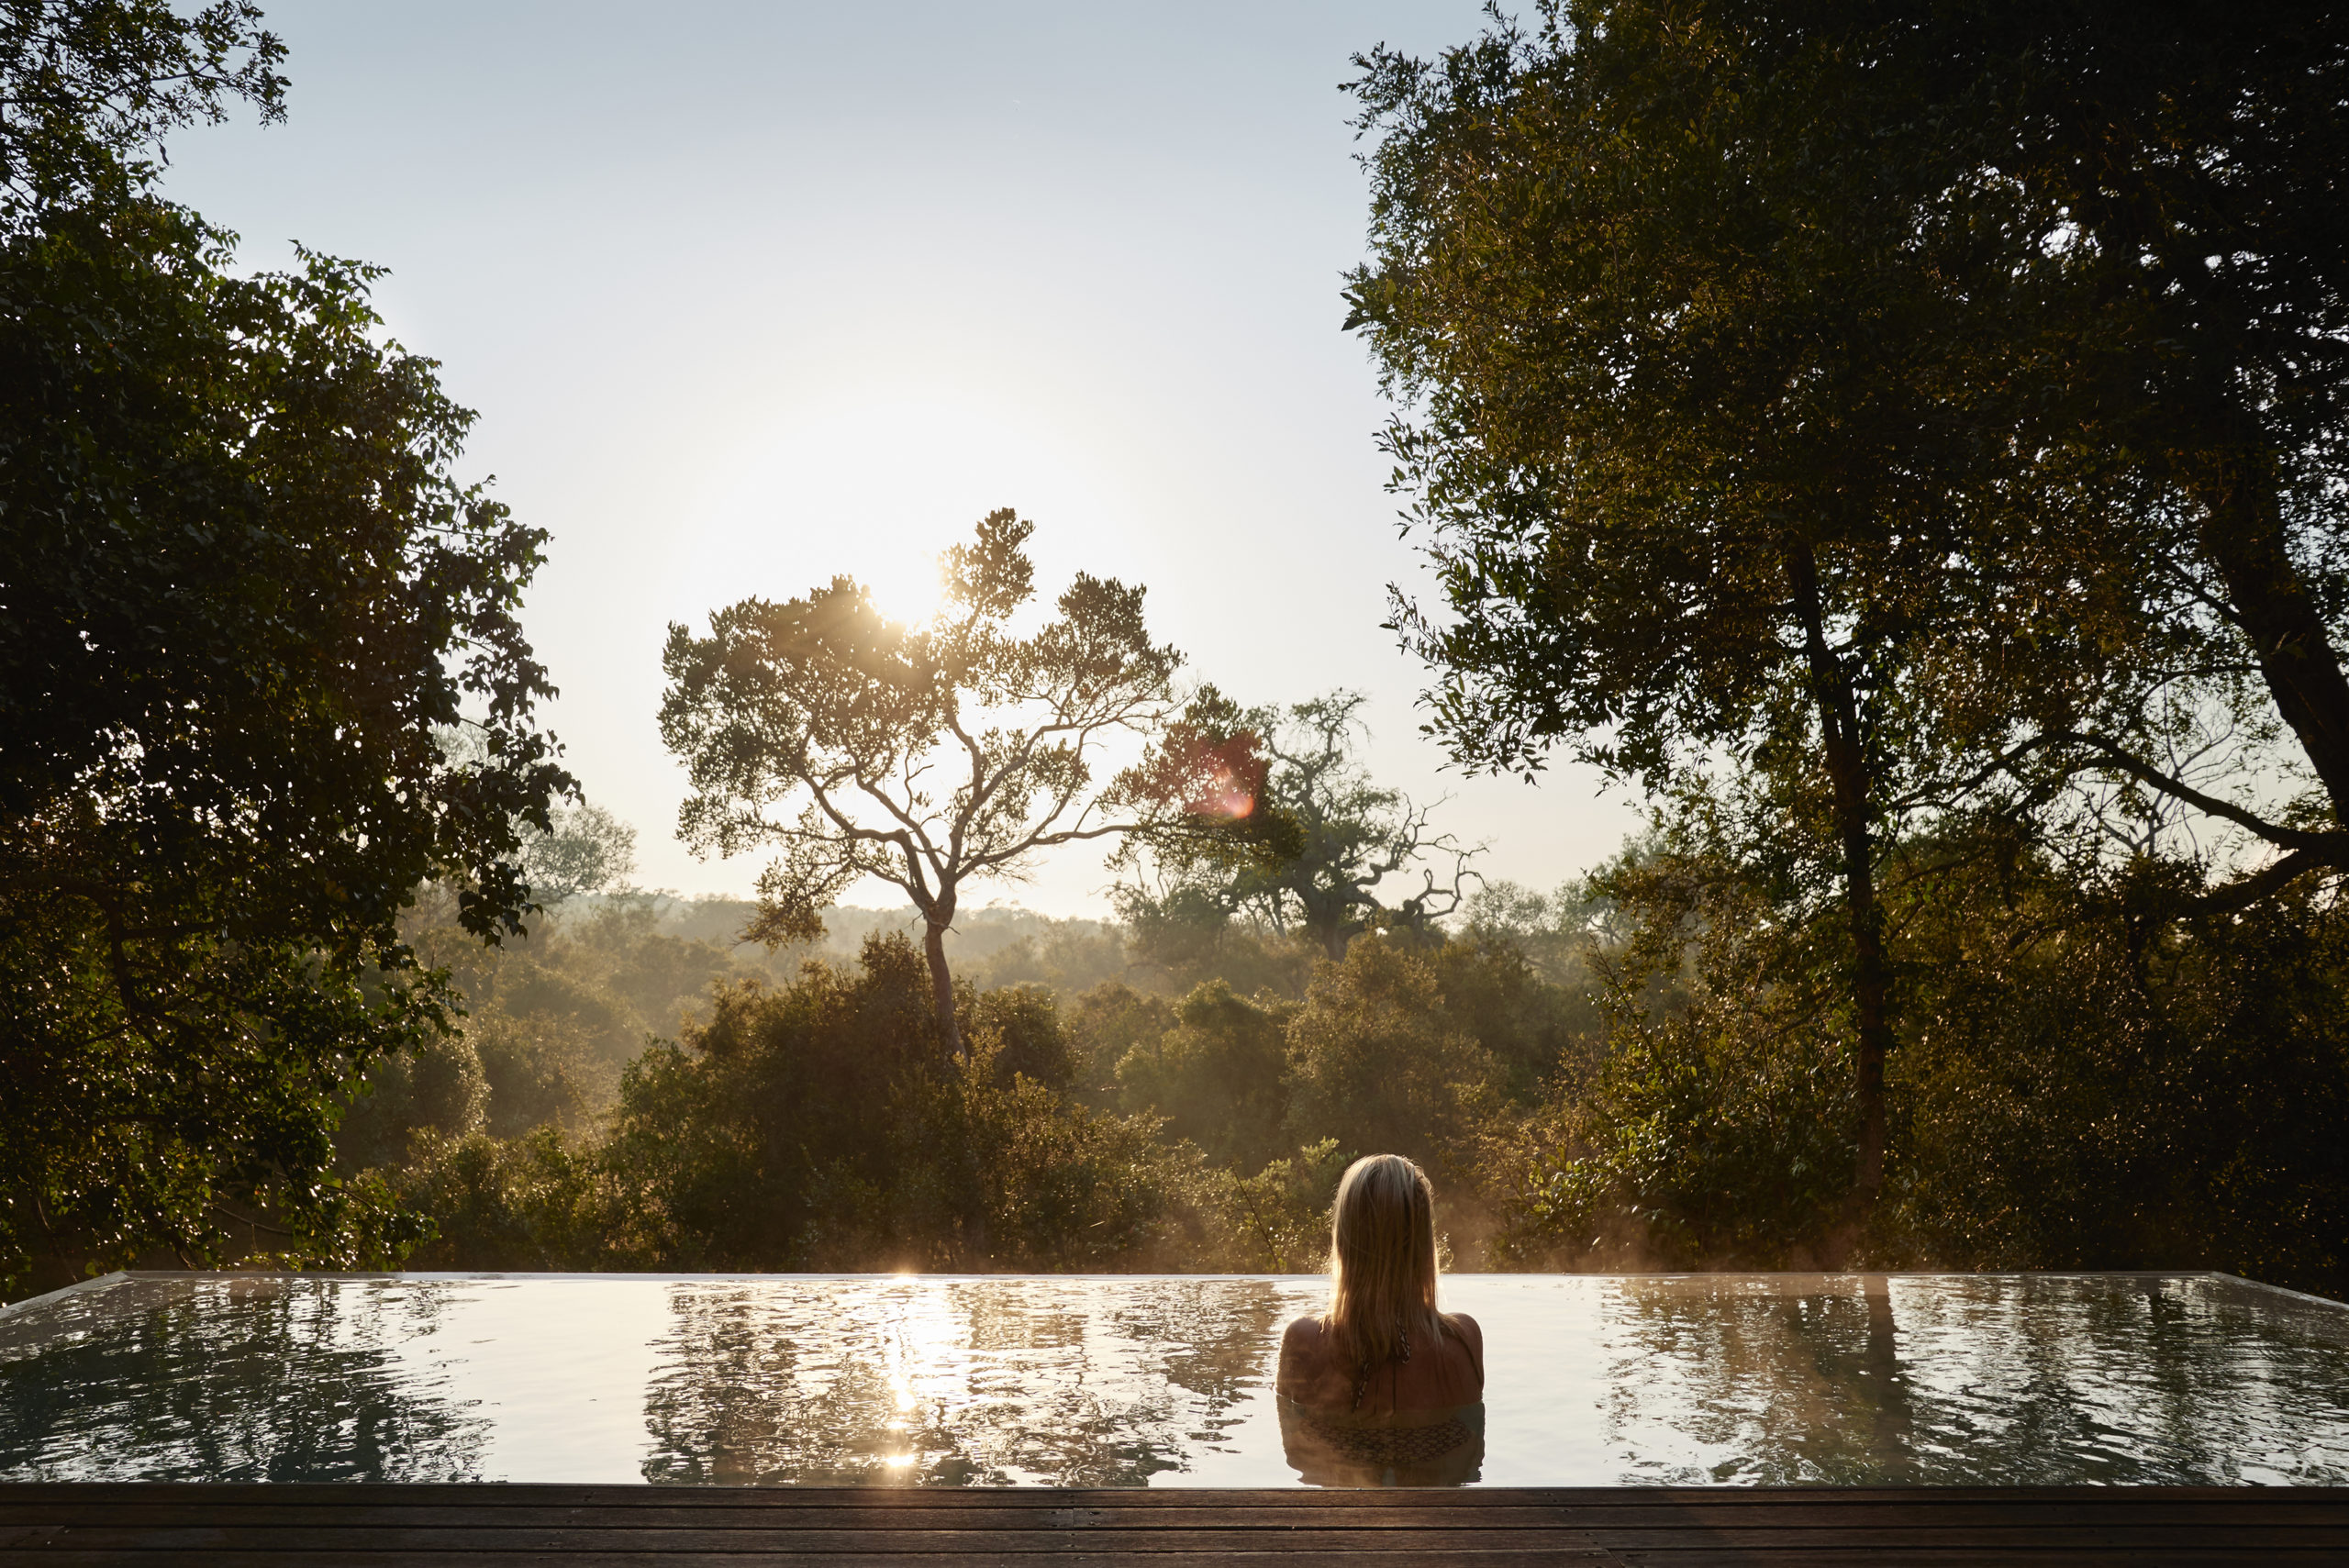 Royal Malawane Safari Lodge private plunge pool at sunrise. Photo courtesy of The Royal Portfolio